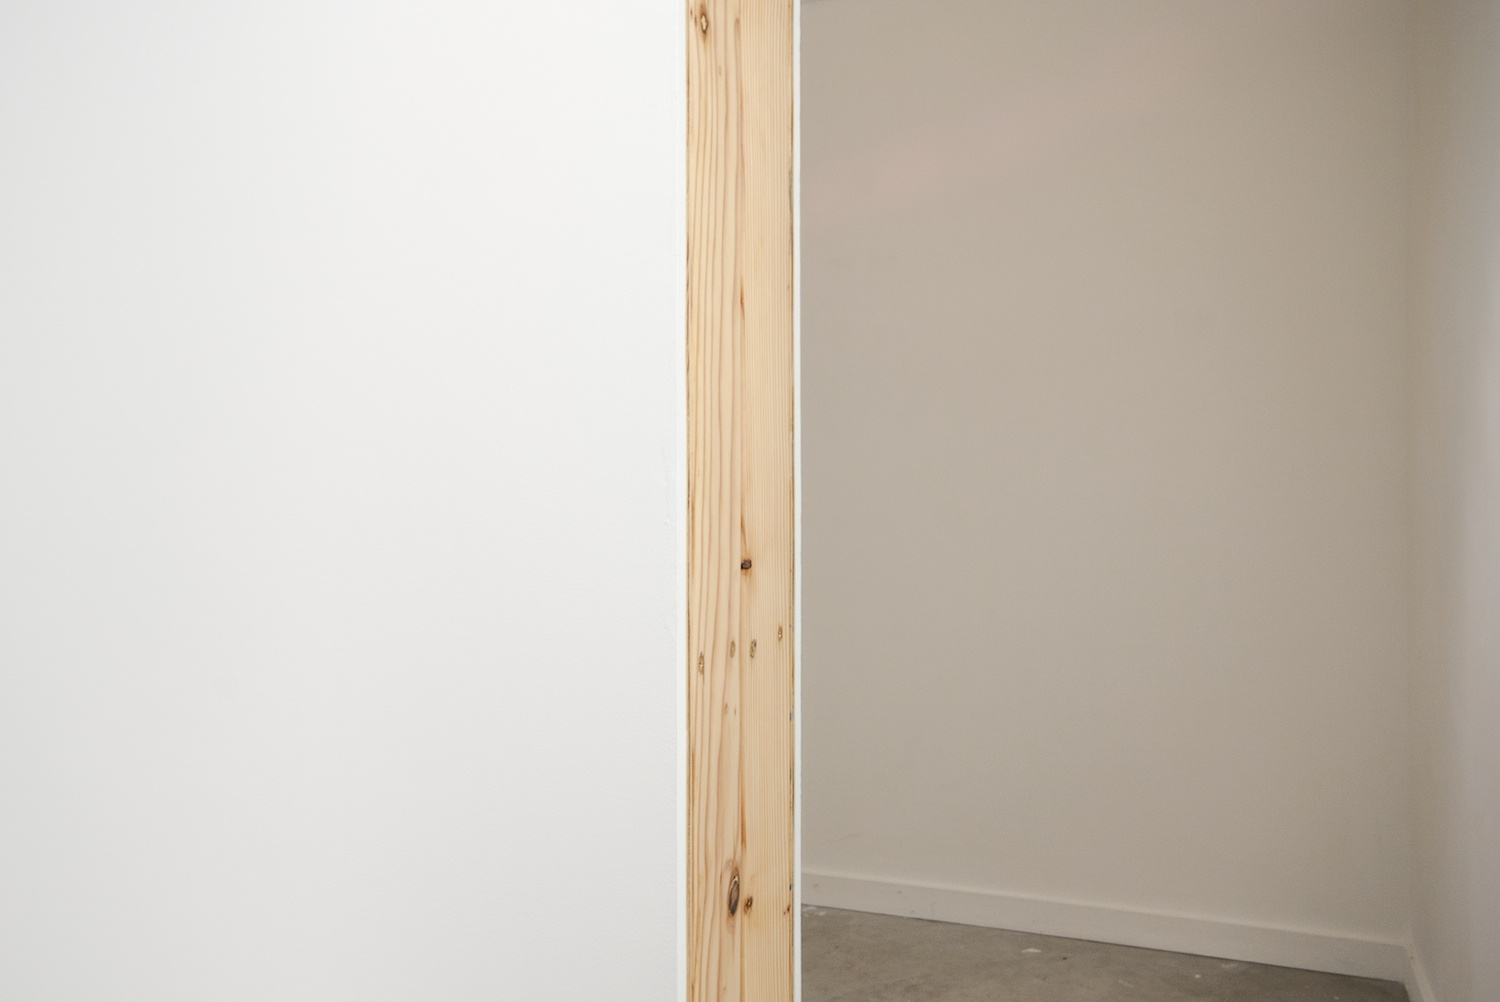 Troy Briggs, Brendan Fowler 2013 Shane Campbell Gallery, Oak Park Installation View